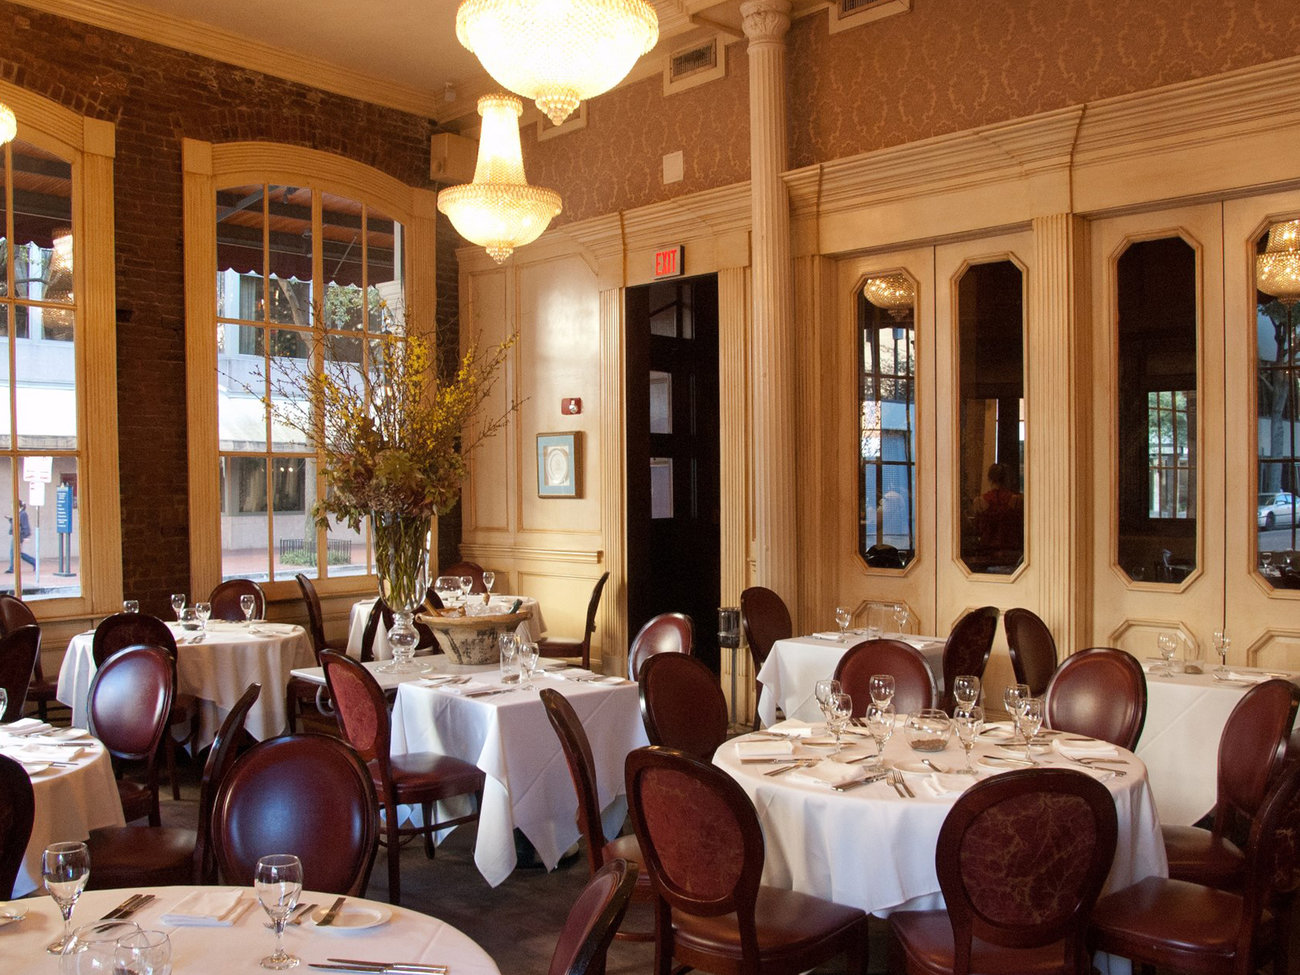 August Restaurant in New Orleans